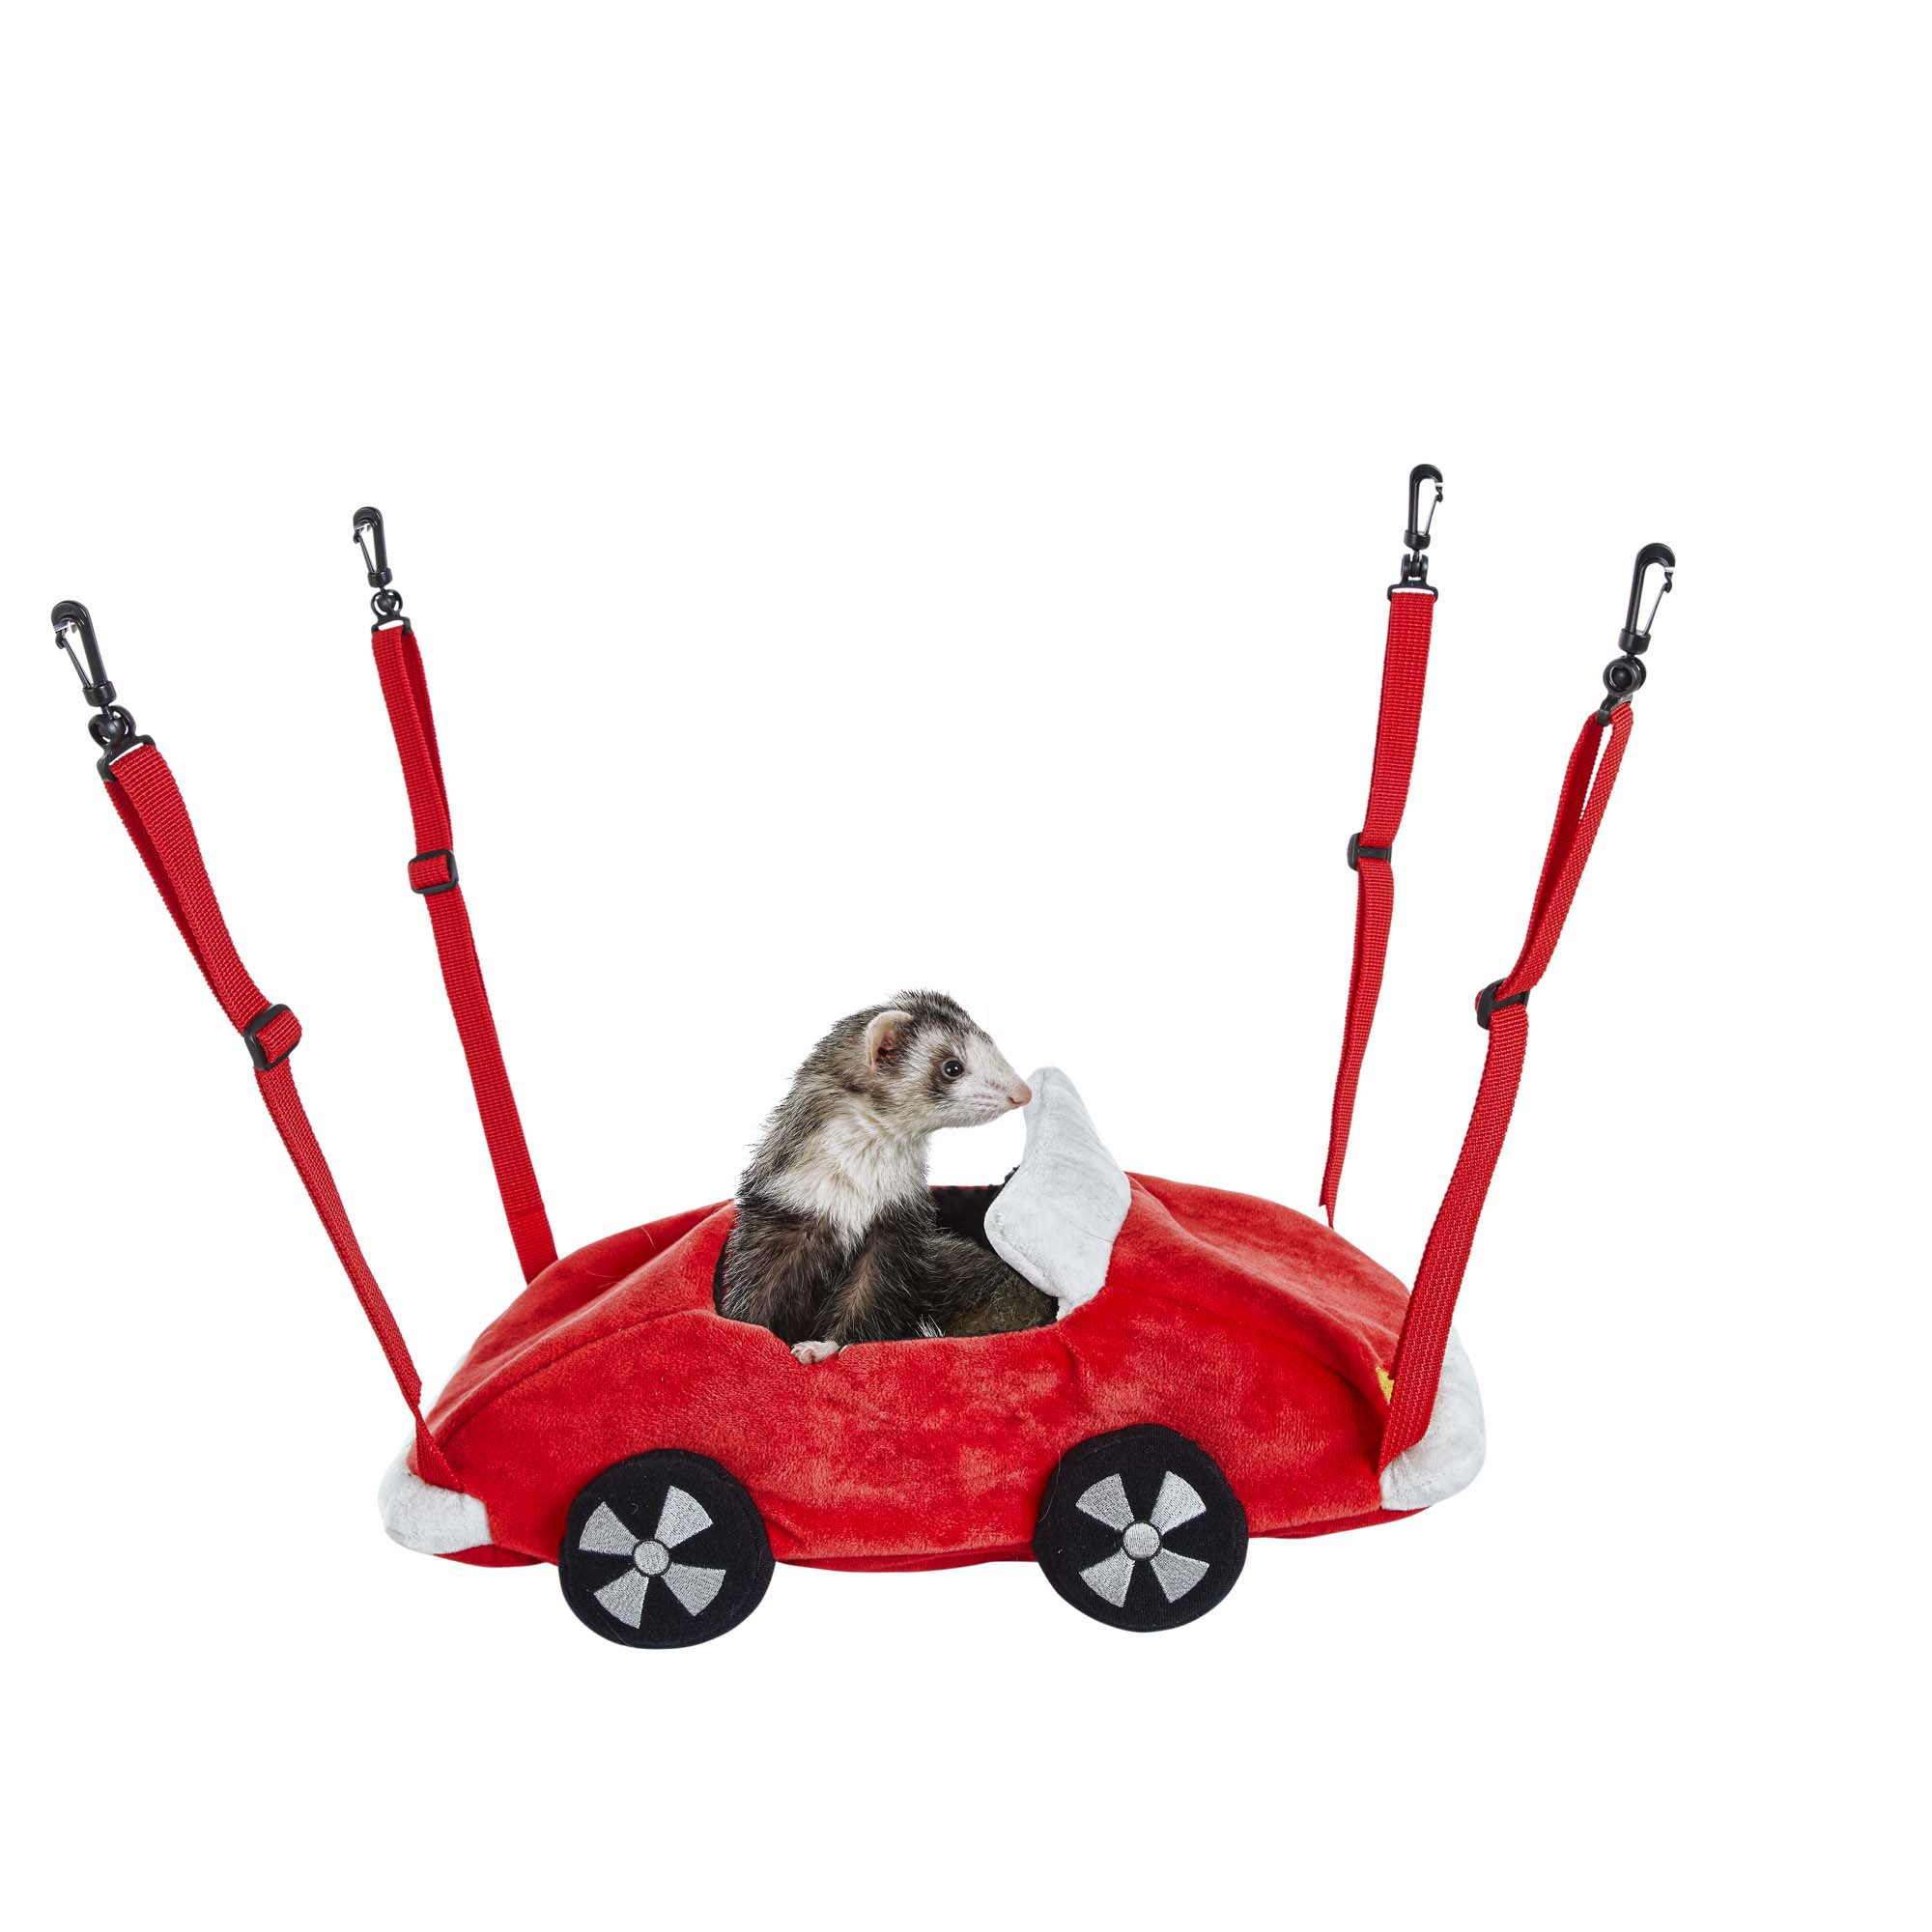 You & Me Racecar Small Animal Hanging Bed